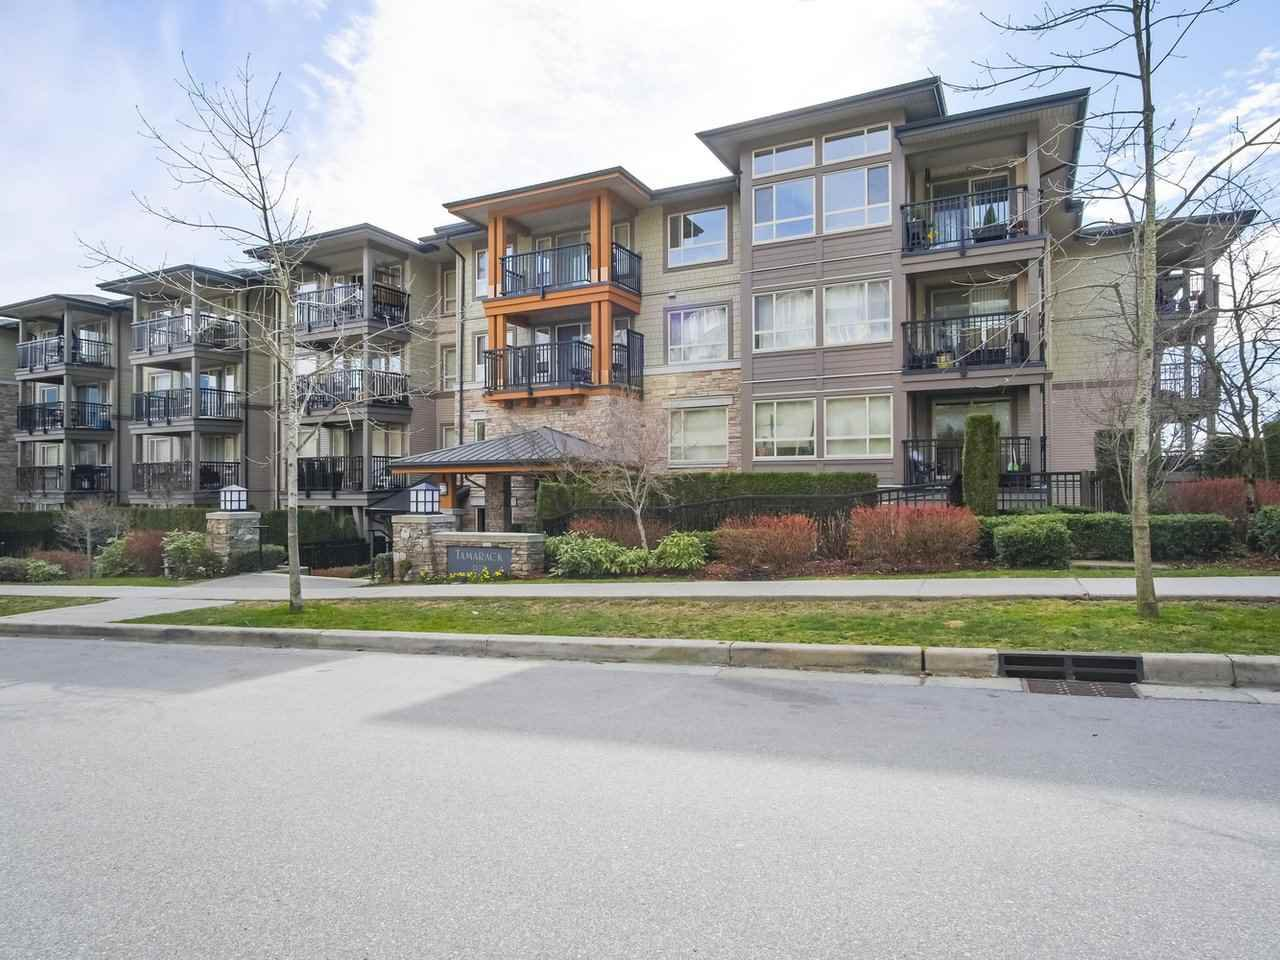 """Main Photo: 417 3178 DAYANEE SPRINGS Boulevard in Coquitlam: Westwood Plateau Condo for sale in """"Tamarack by Polygon"""" : MLS®# R2397922"""